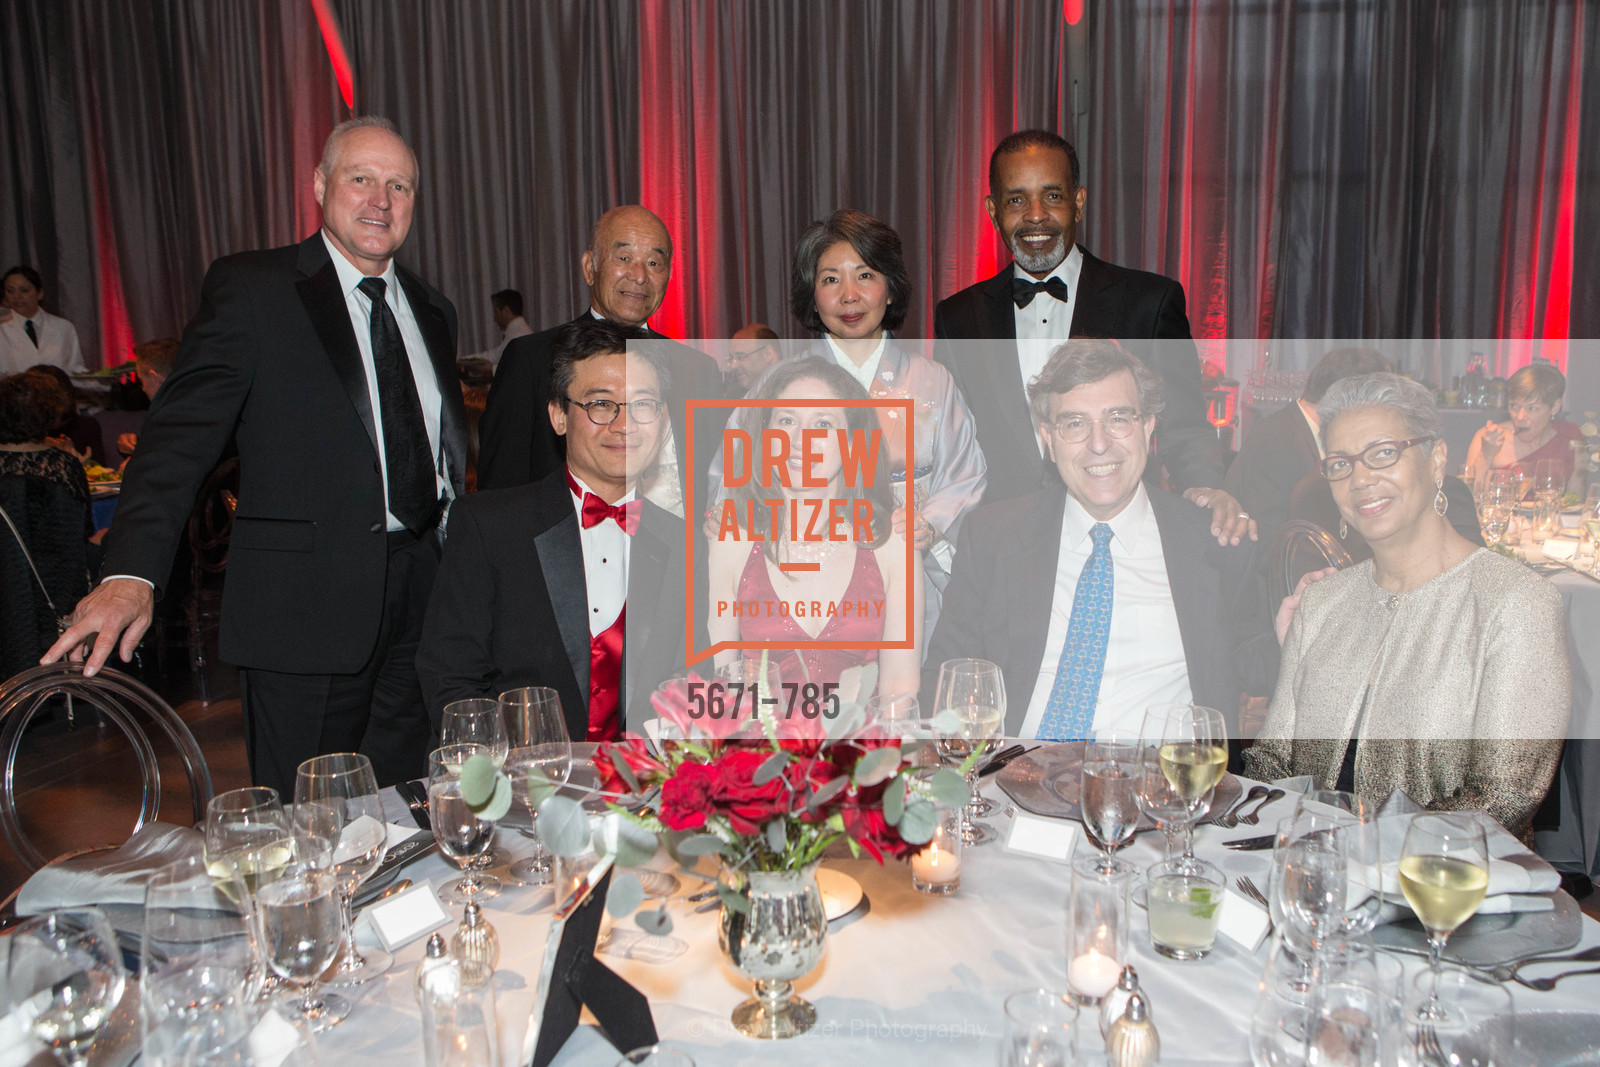 Alex Kim, Hiro Ogawa, Moira Dowell, Kazue Watanabe, Sharon Madison, Neal Litvack, 2015 RED CROSS Gala, US, April 11th, 2015,Drew Altizer, Drew Altizer Photography, full-service agency, private events, San Francisco photographer, photographer california